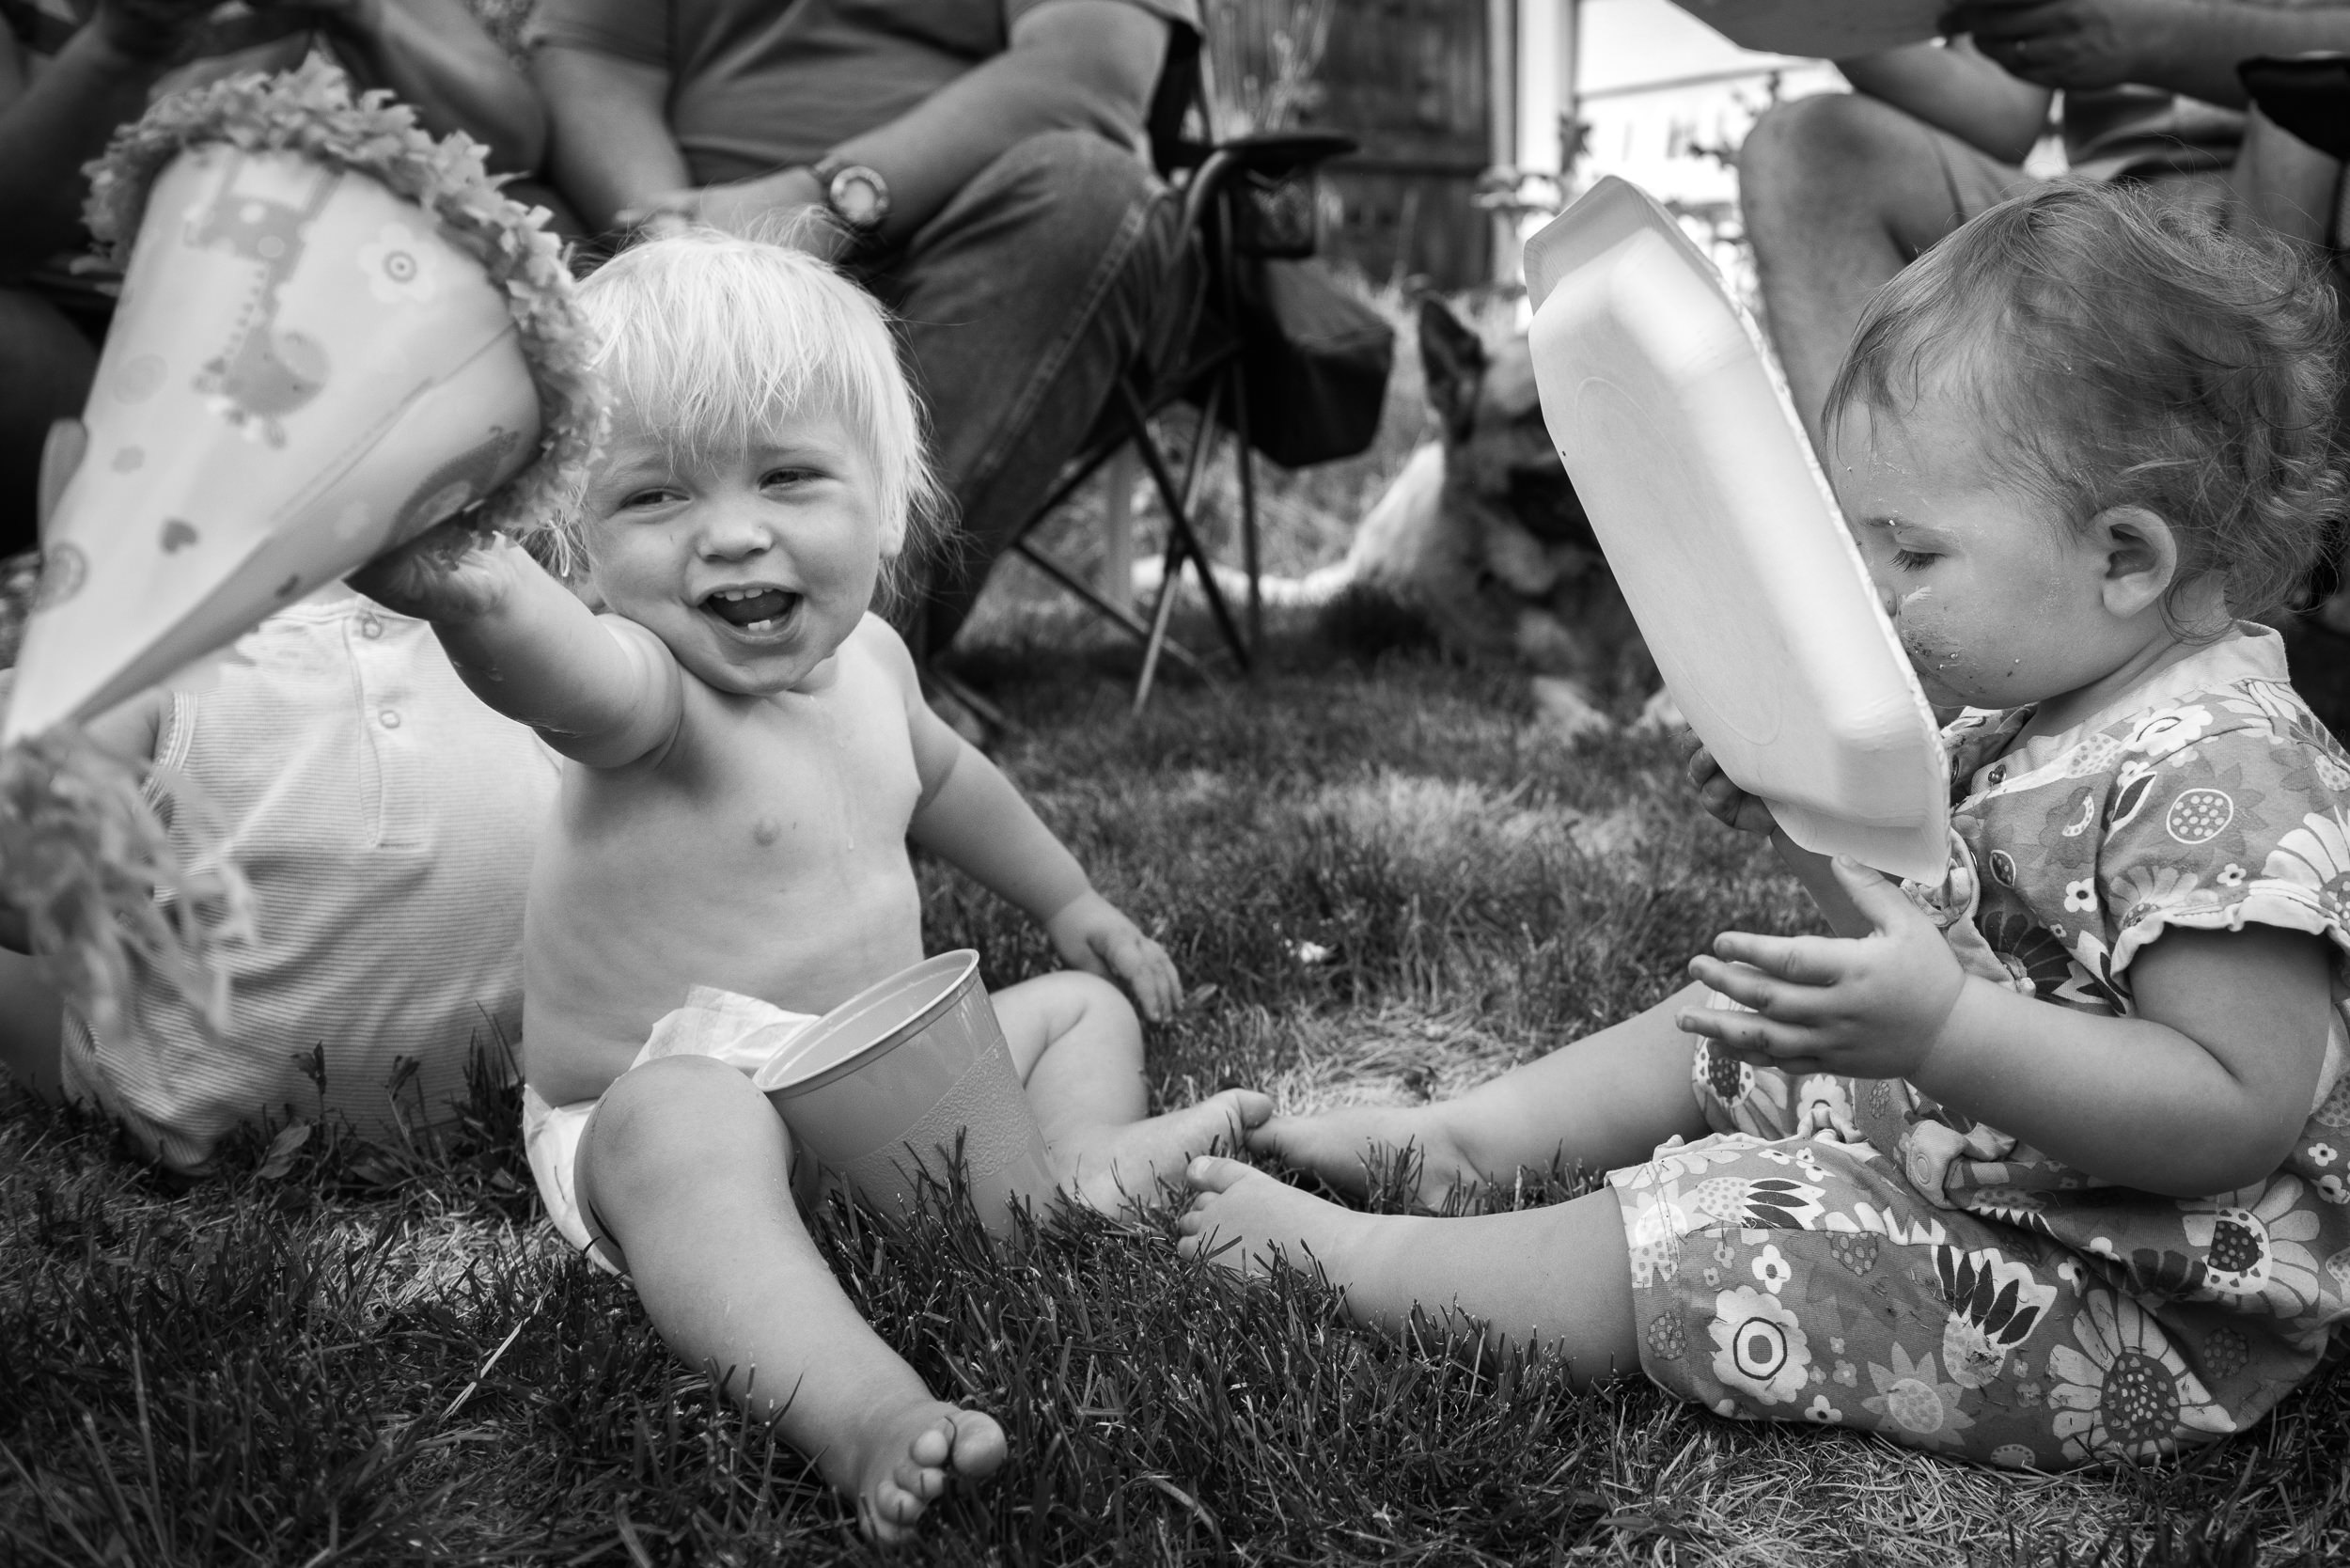 Molly Rees Photo - Black and White Documentary Family Photography in Denver, Colorado - baby first birthday party hat by M. Menschel